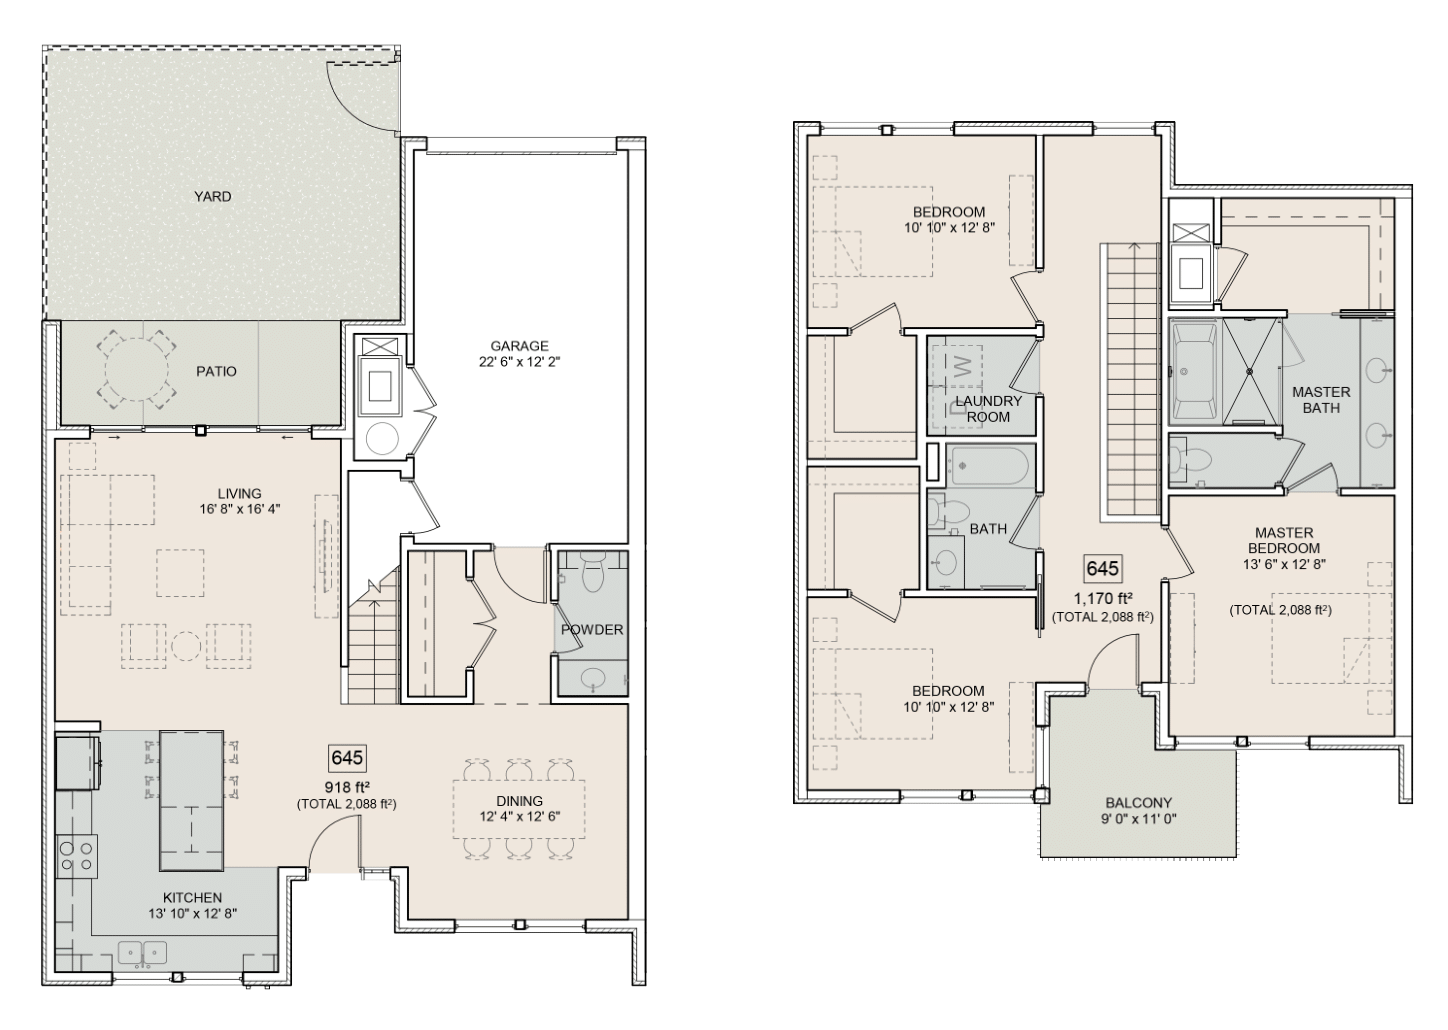 A Elliot unit with 3 Bedrooms and 3 Bathrooms with area of 2088 sq. ft